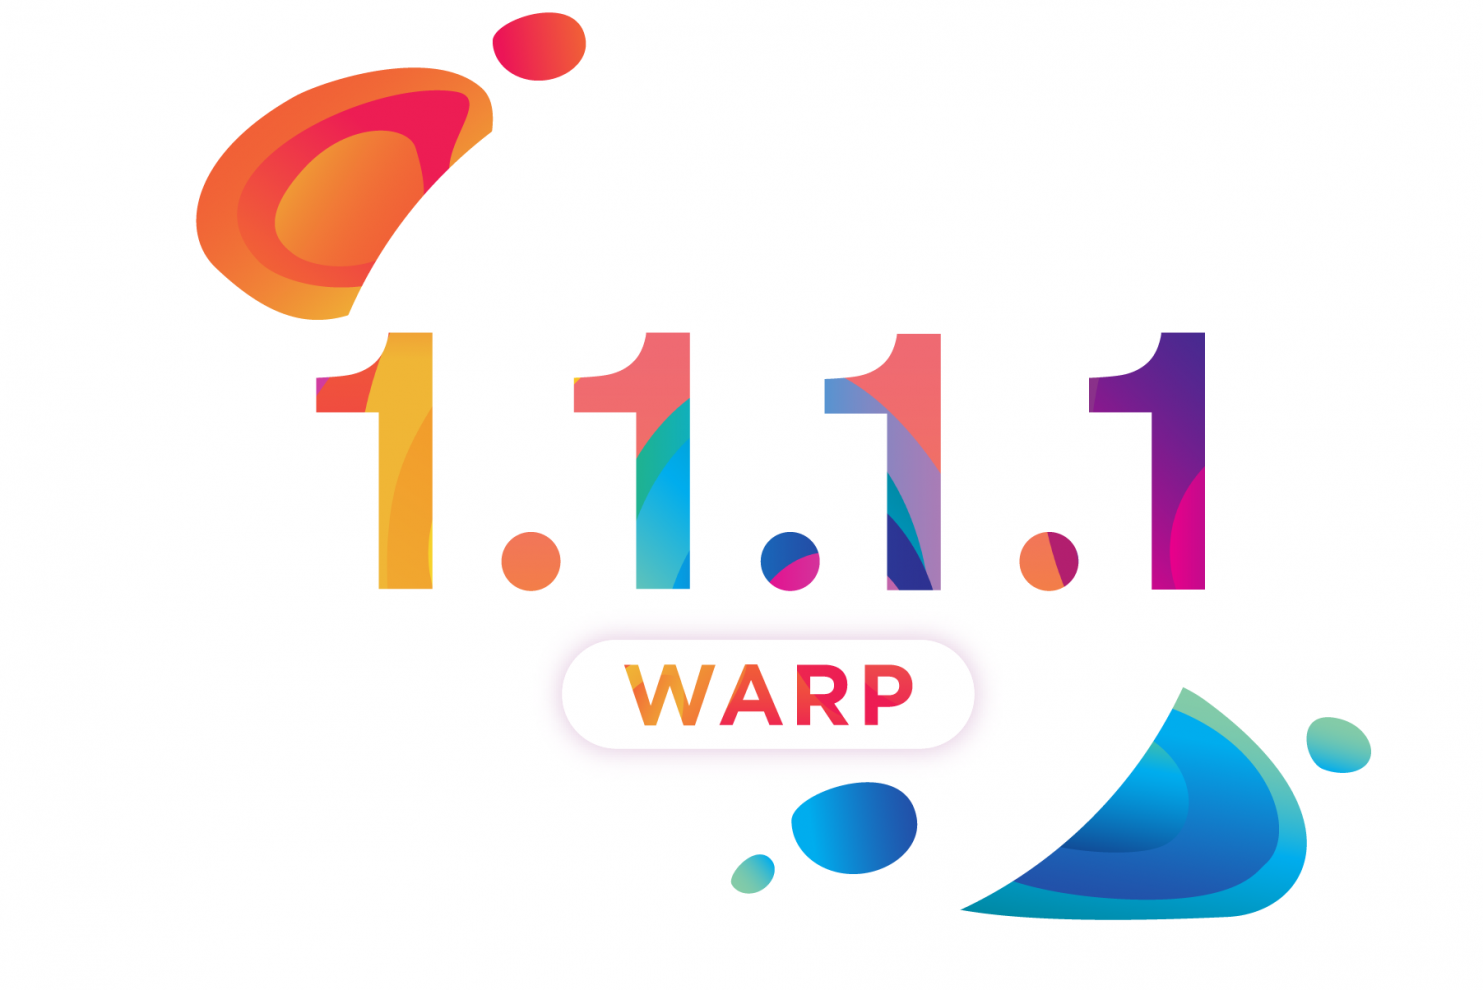 Warp, the new VPN by Cloudflare